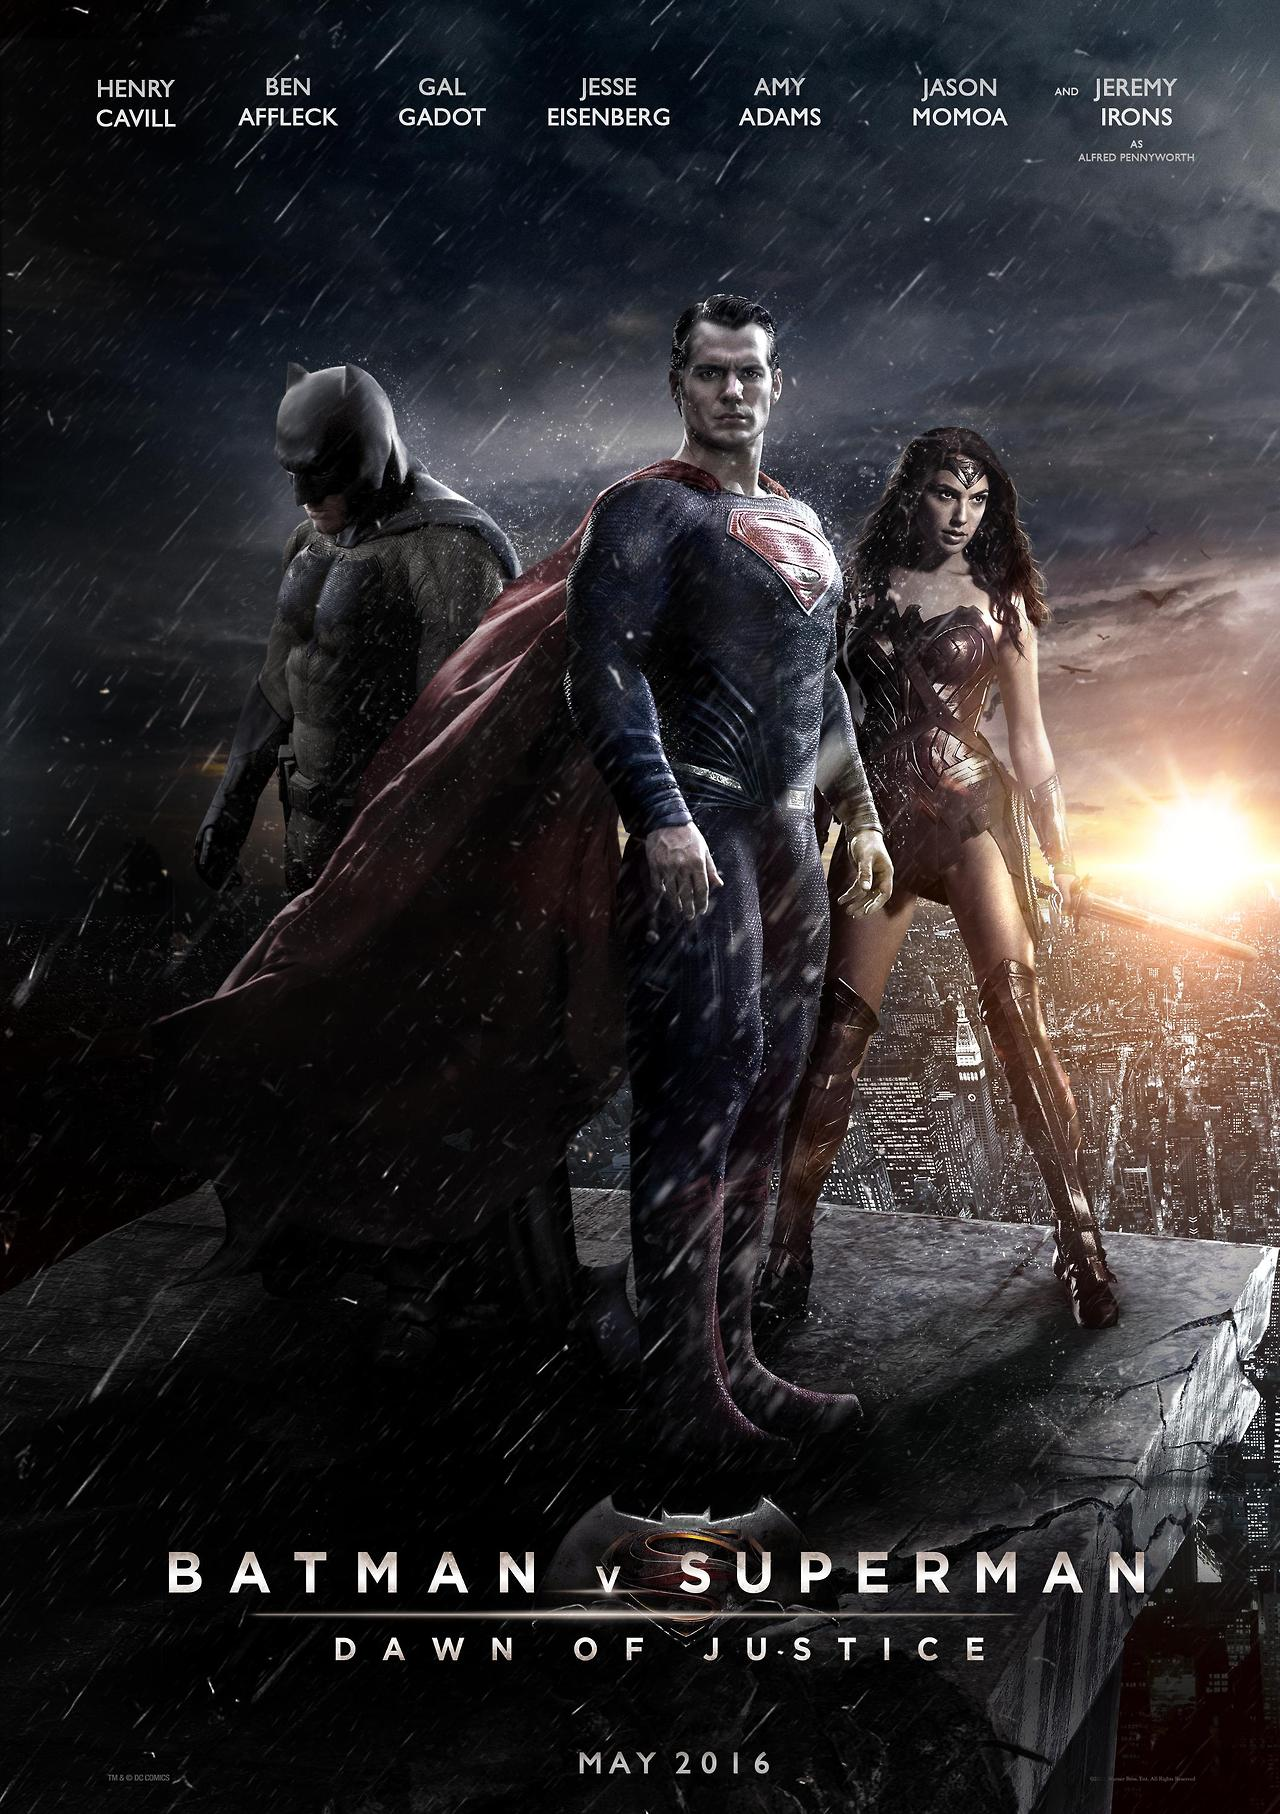 دانلود فیلم Batman v Superman: Dawn of Justice 2016